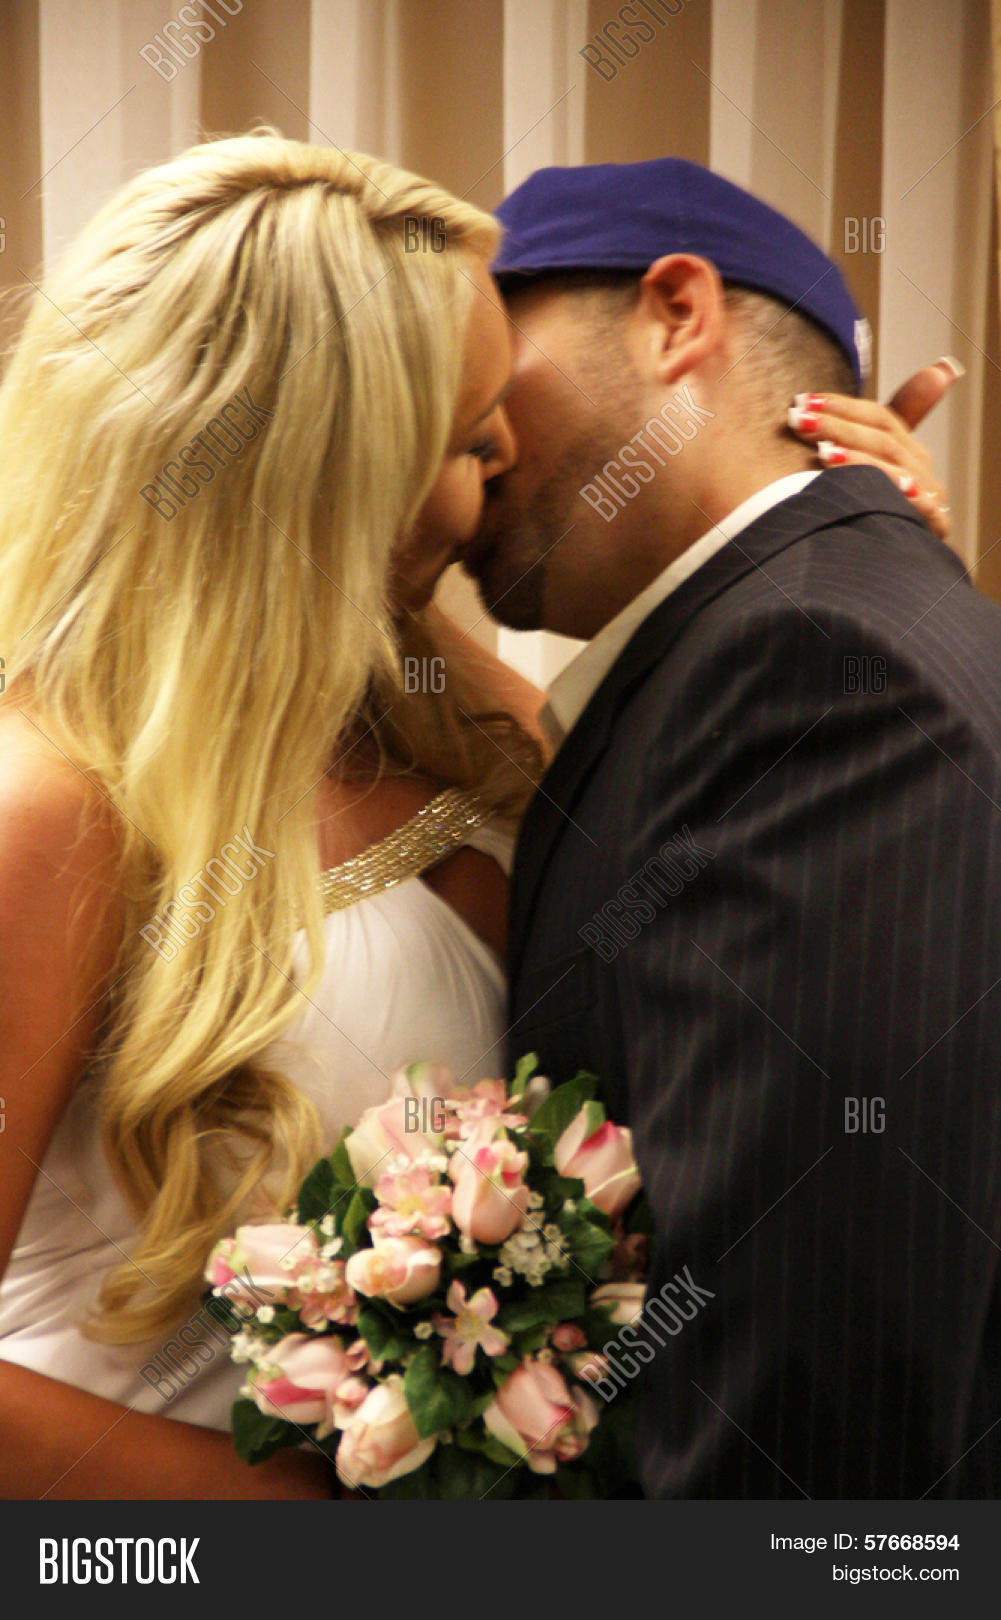 Mary Carey And Mario Monge Courtesy Of At The Wedding Ceremony Of Mary Carey And Mario Monge